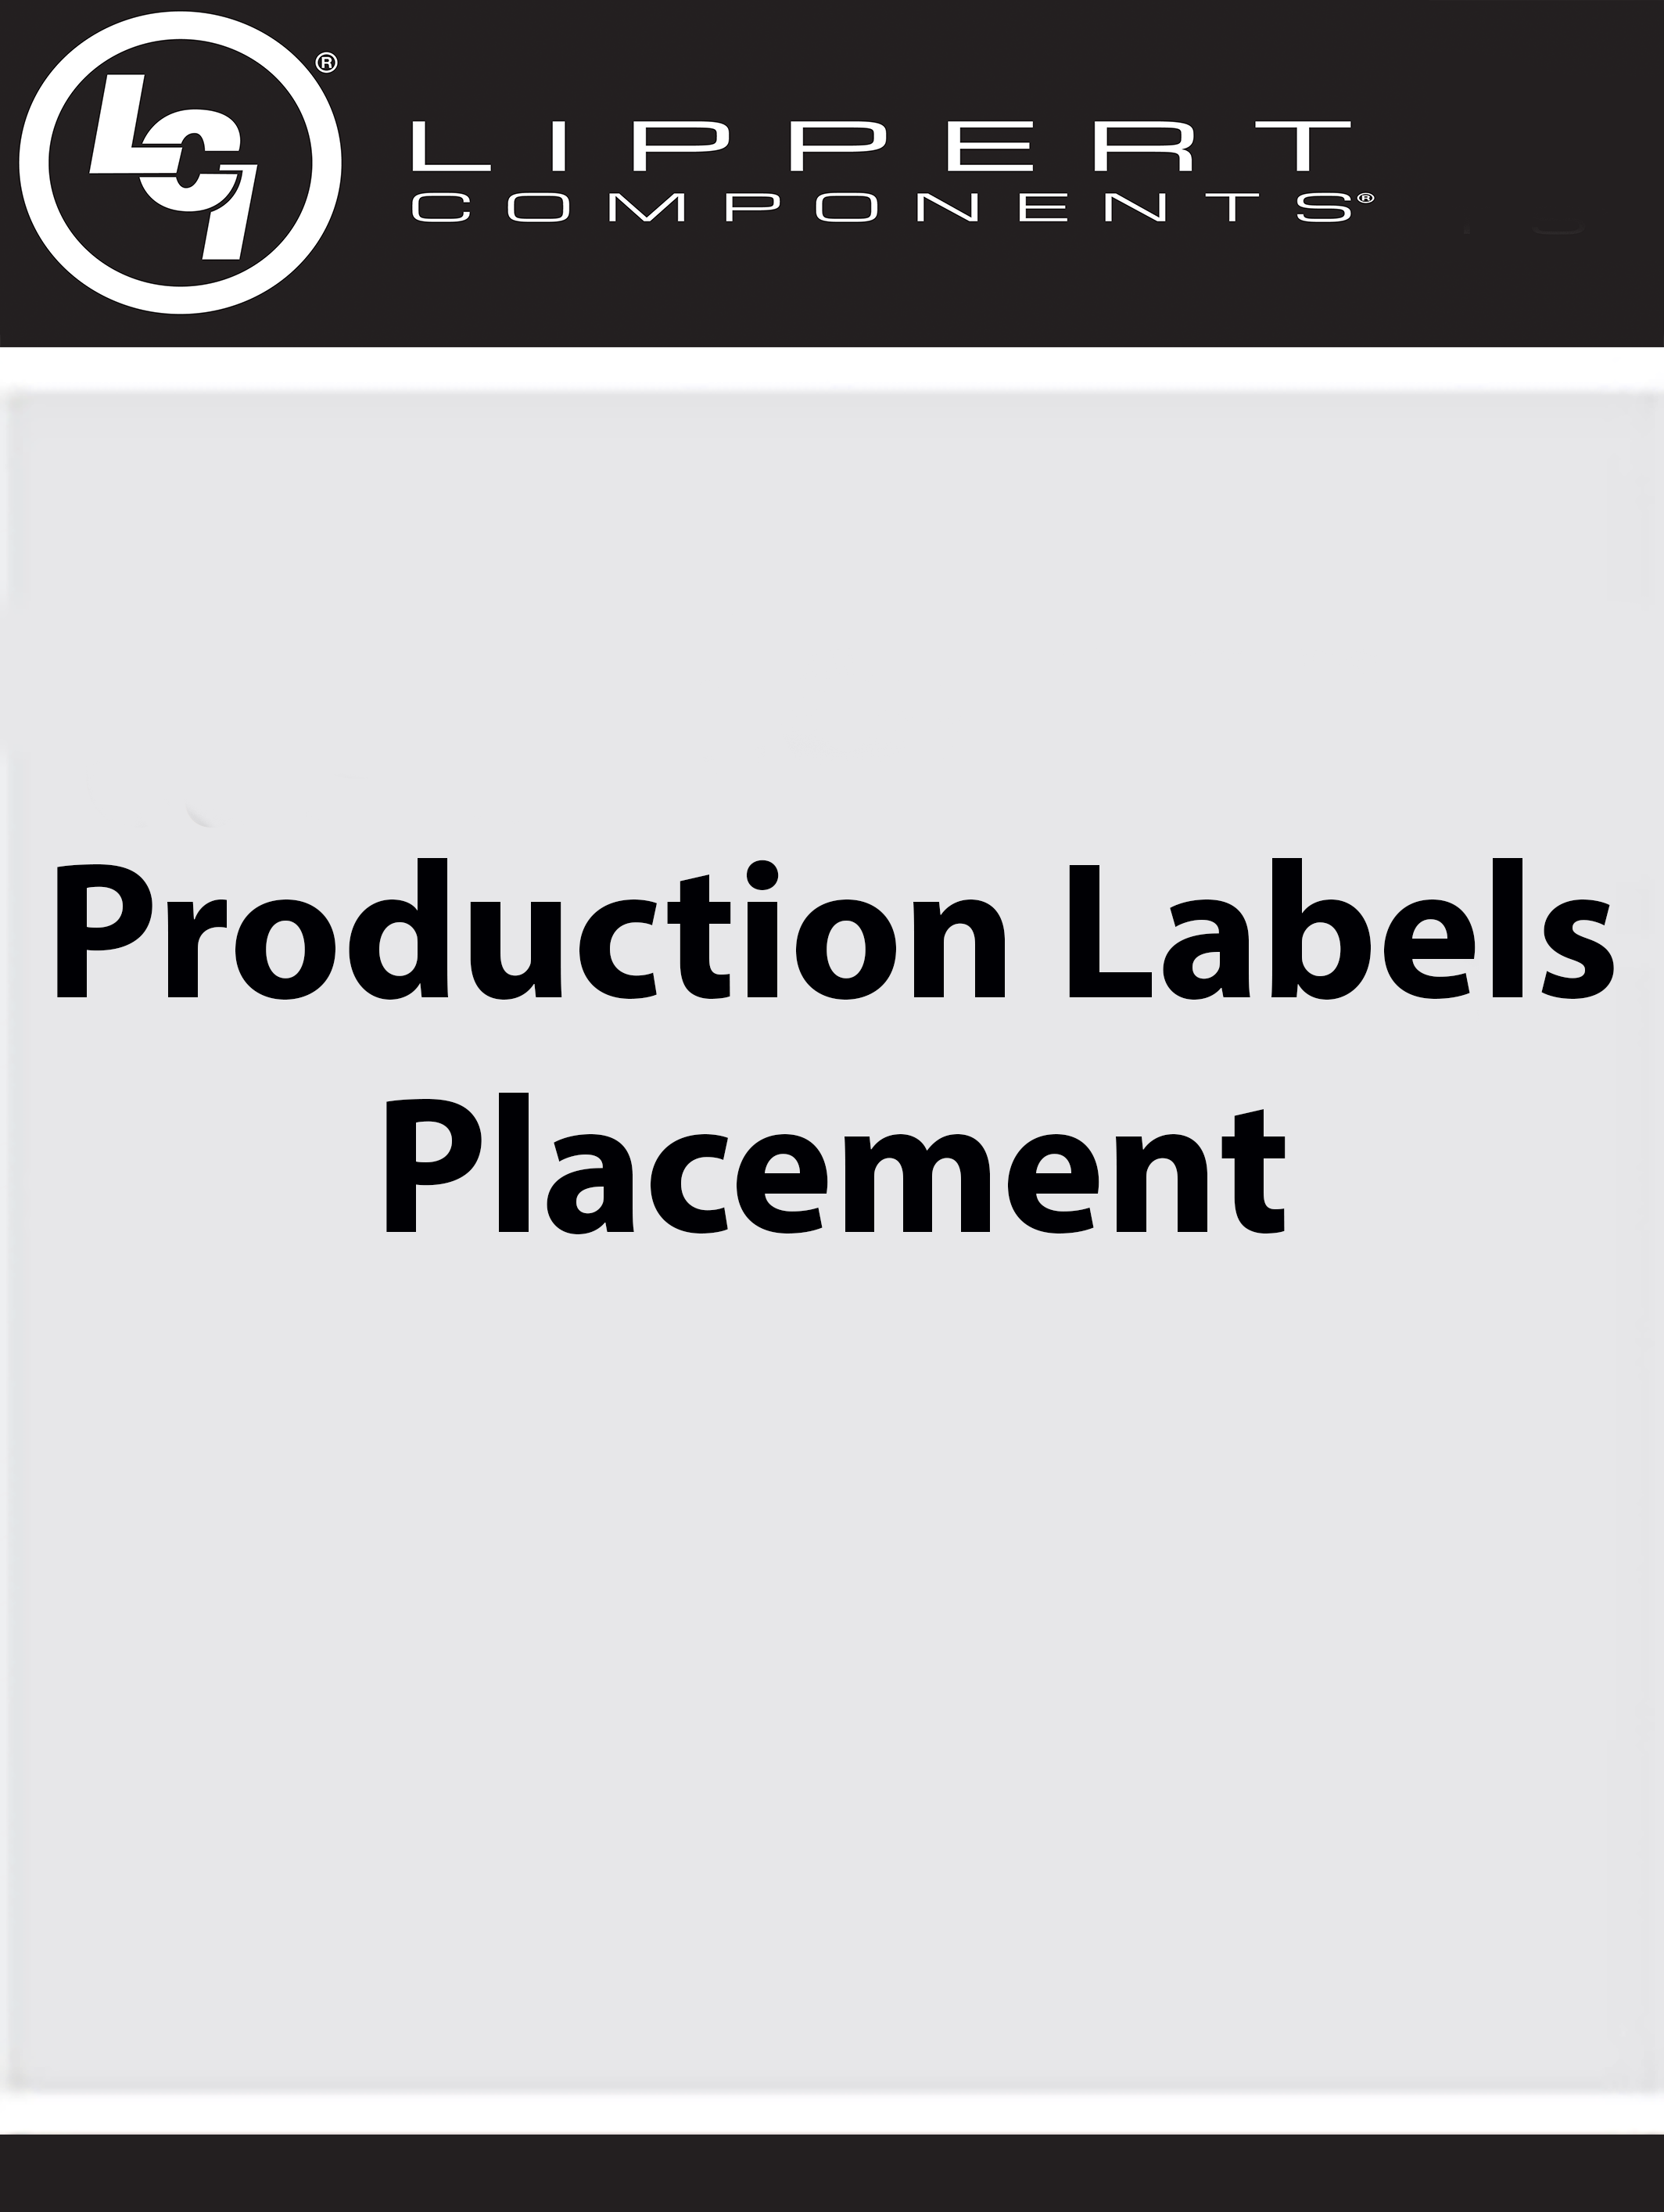 Production Labels Placement